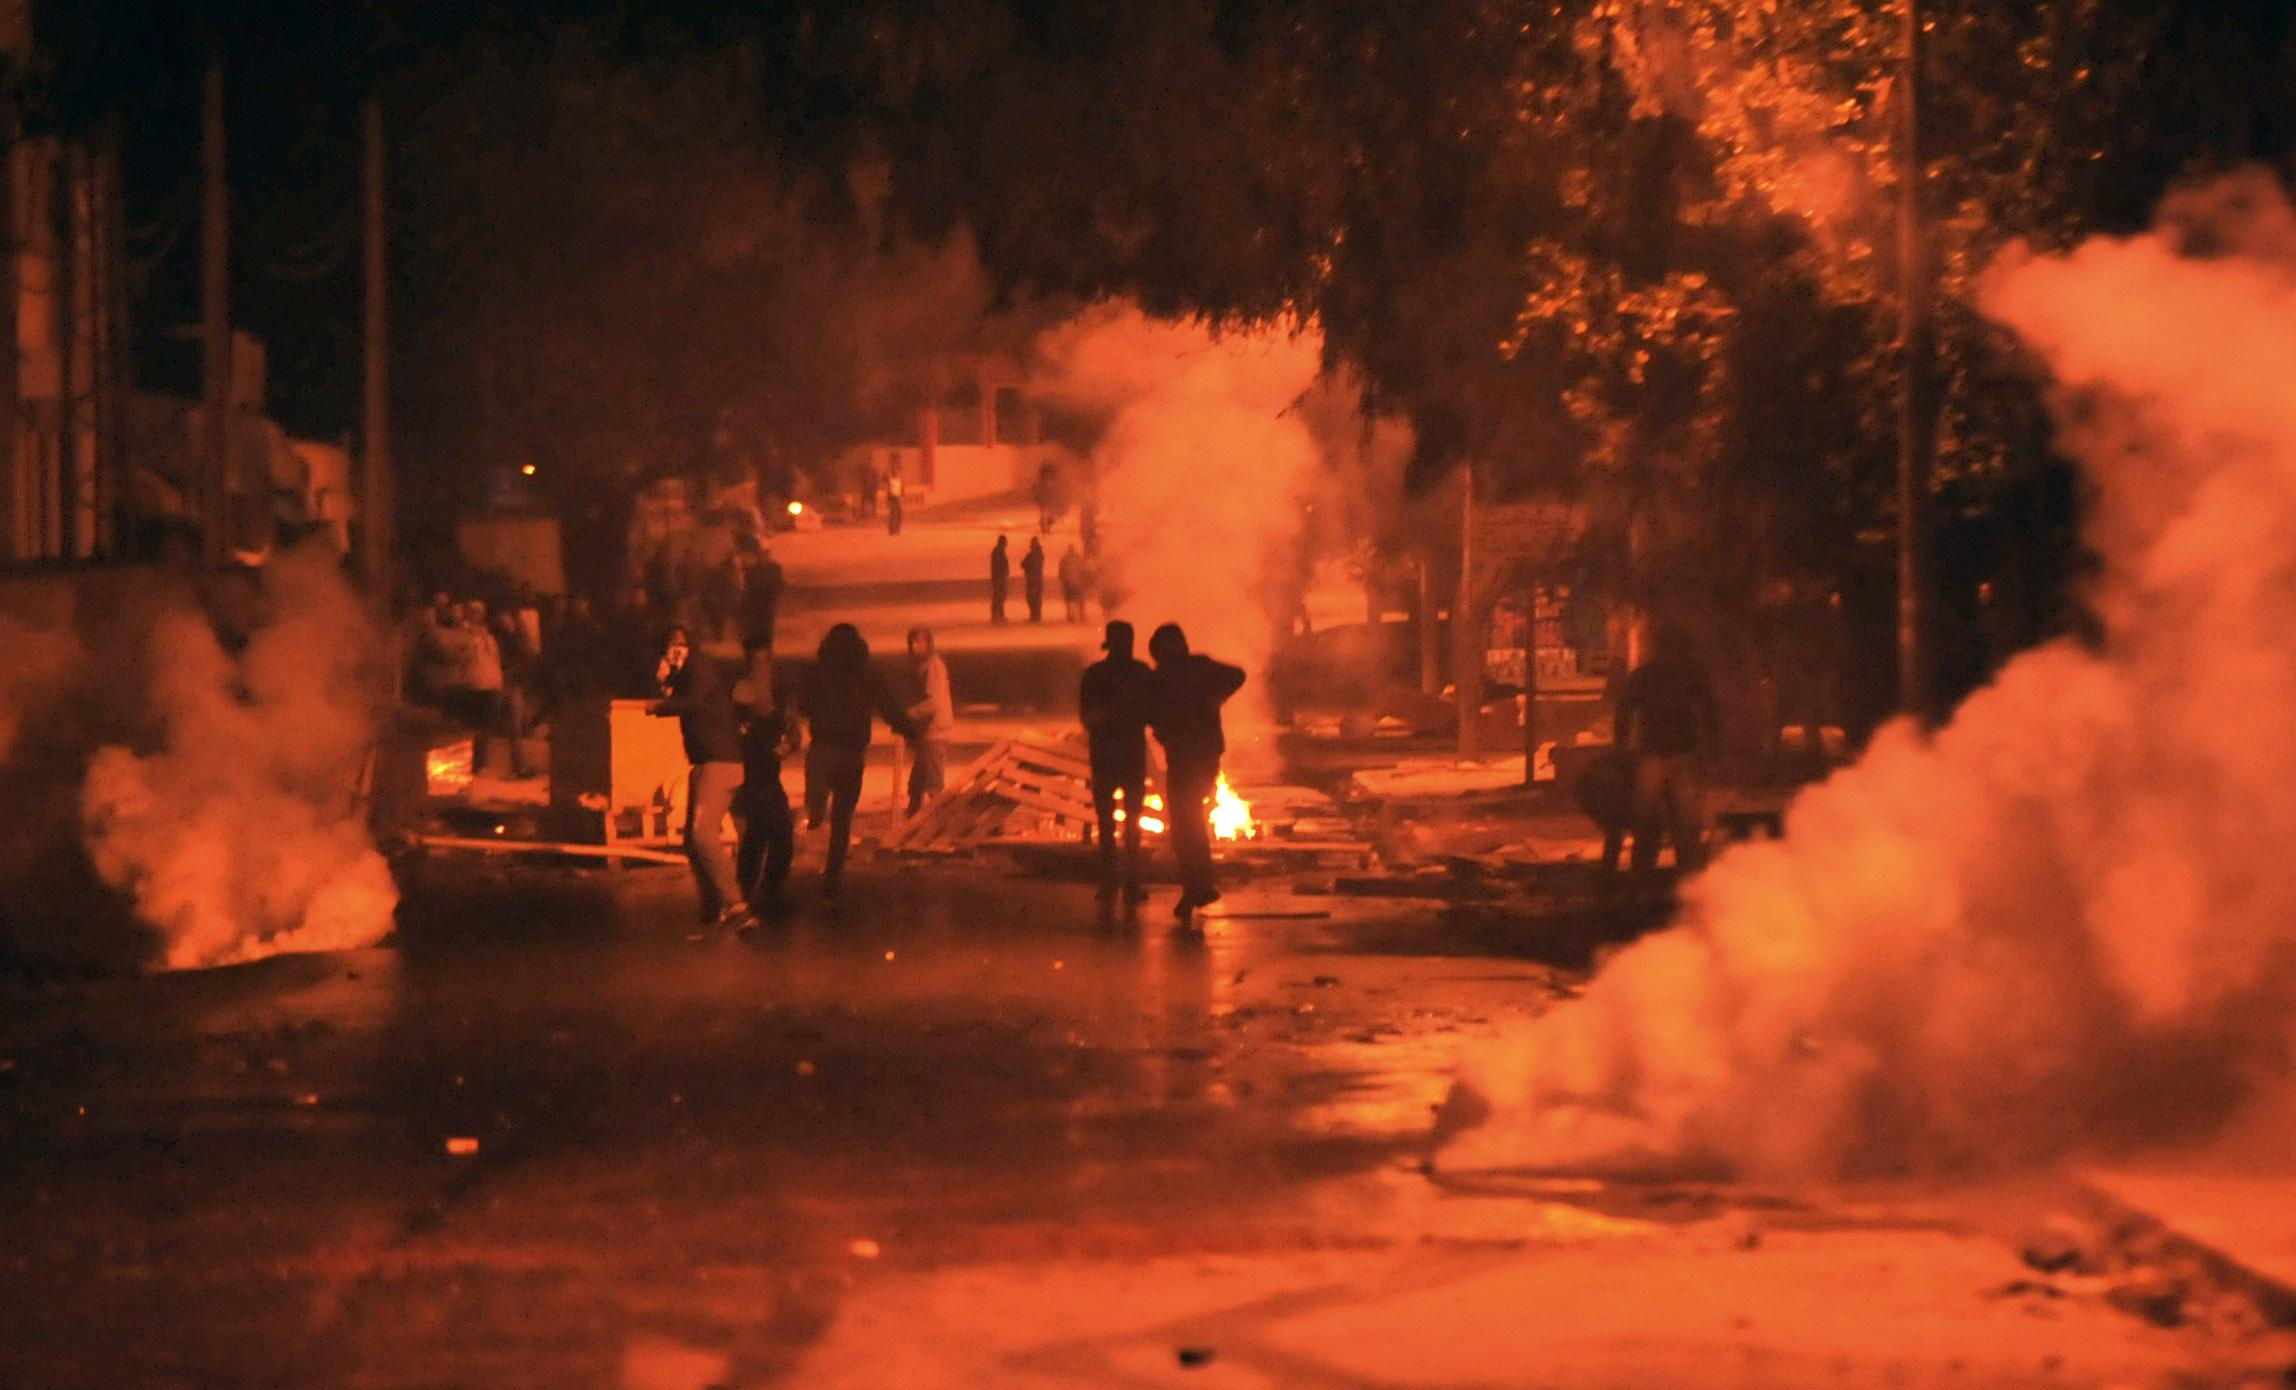 <p>Tear gas smoke billows as Tunisian protestors throw stones towards security forces in Tunis' Djebel Lahmer district early on Jan. 10, 2018 after price hikes ignited protests in the North African country. (Photo: Sofiene Hamdaoui/AFP/Getty Images) </p>